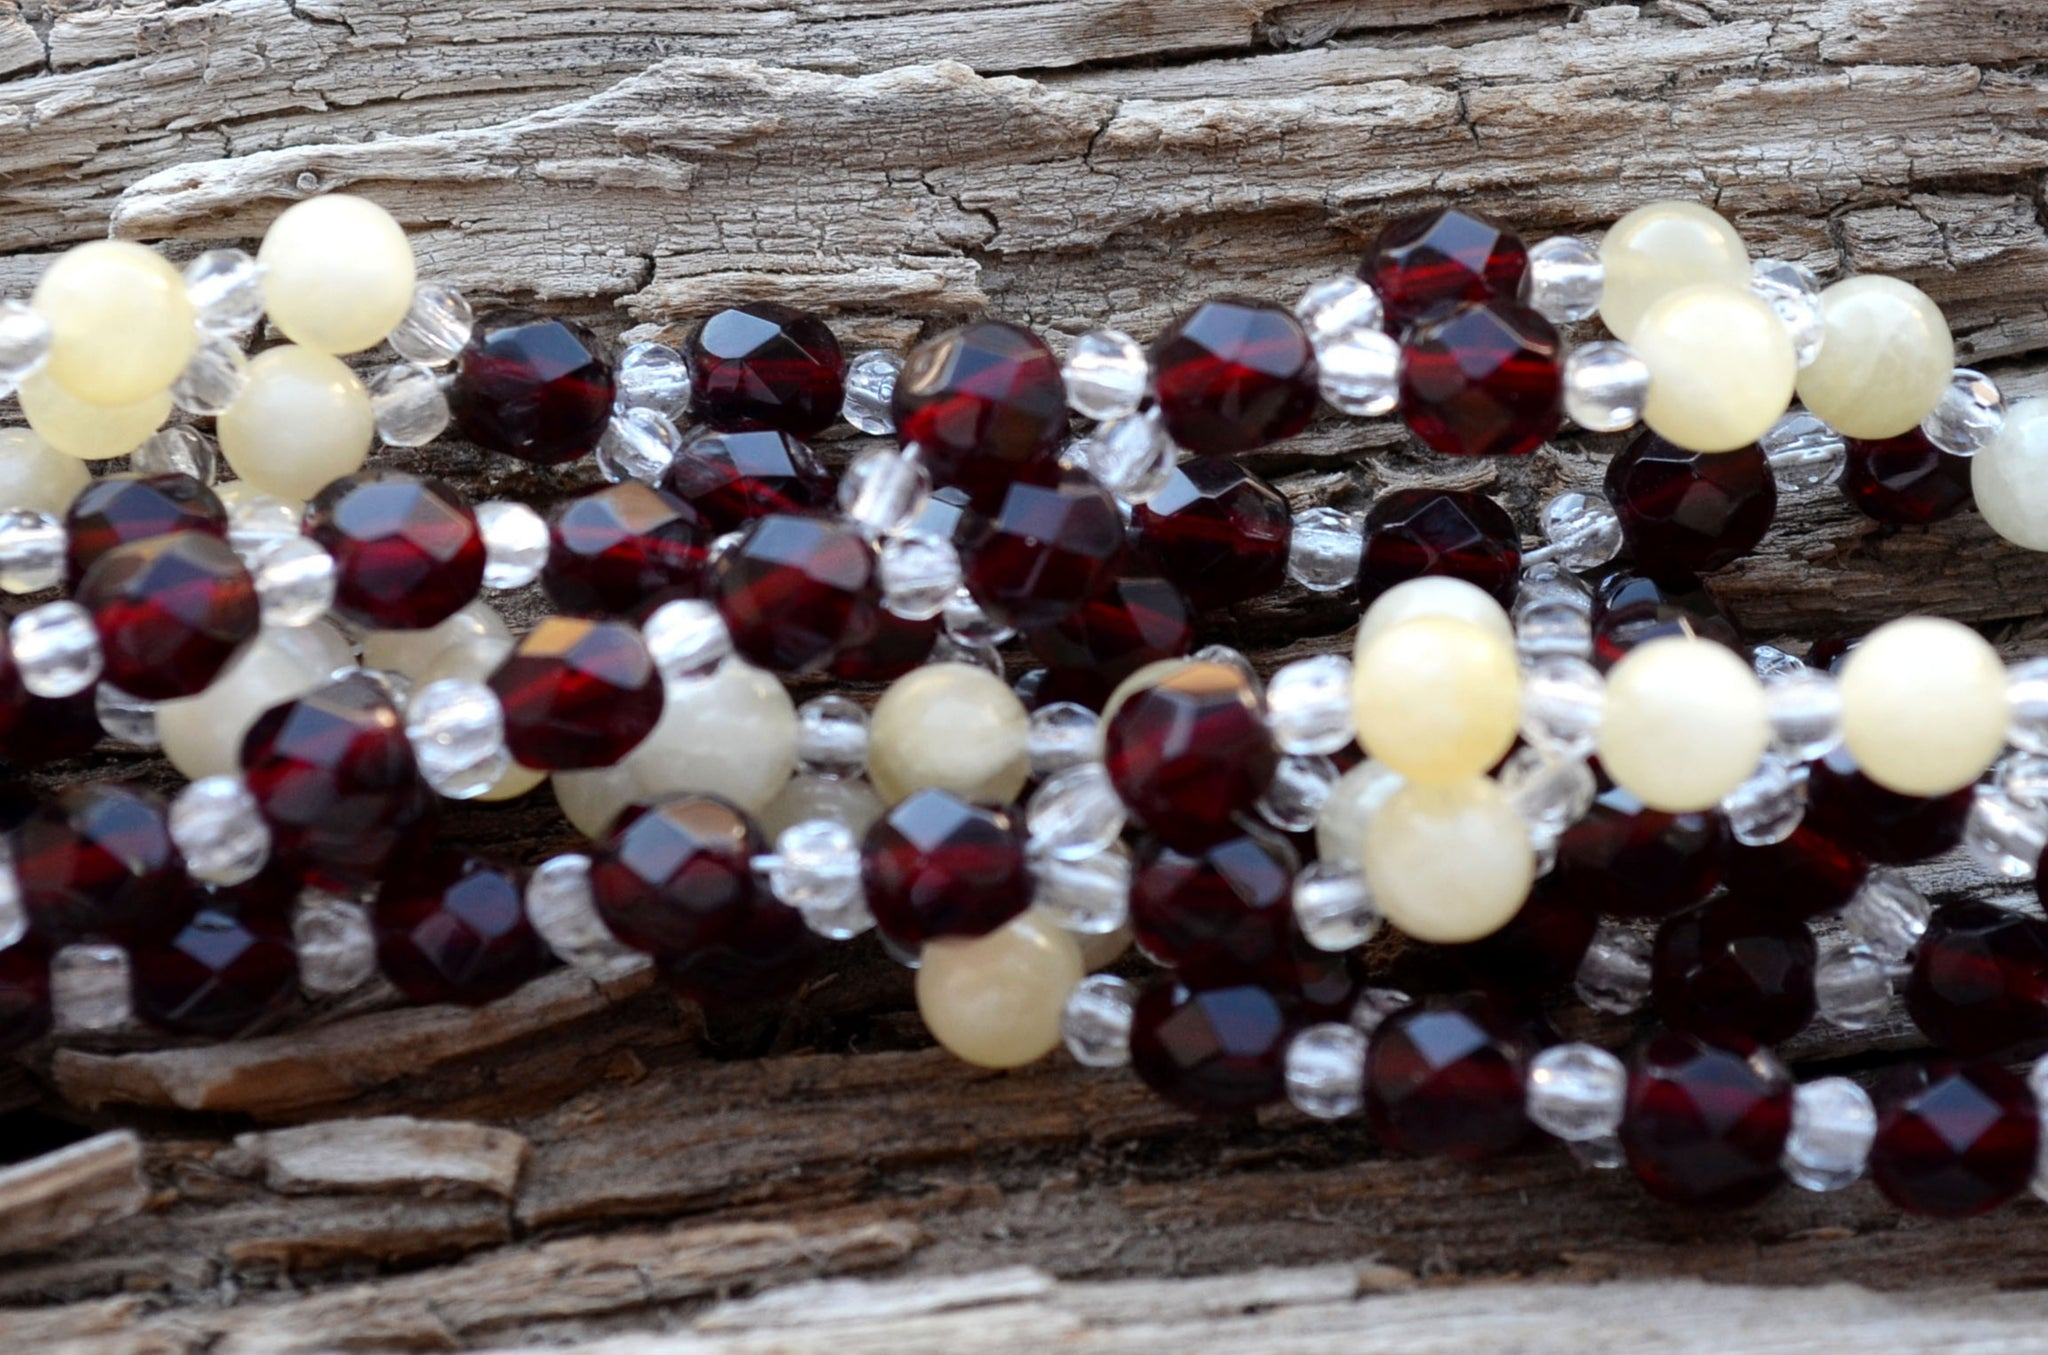 Garnet Czech Crystal and Calcite with Fire Polished Crystal